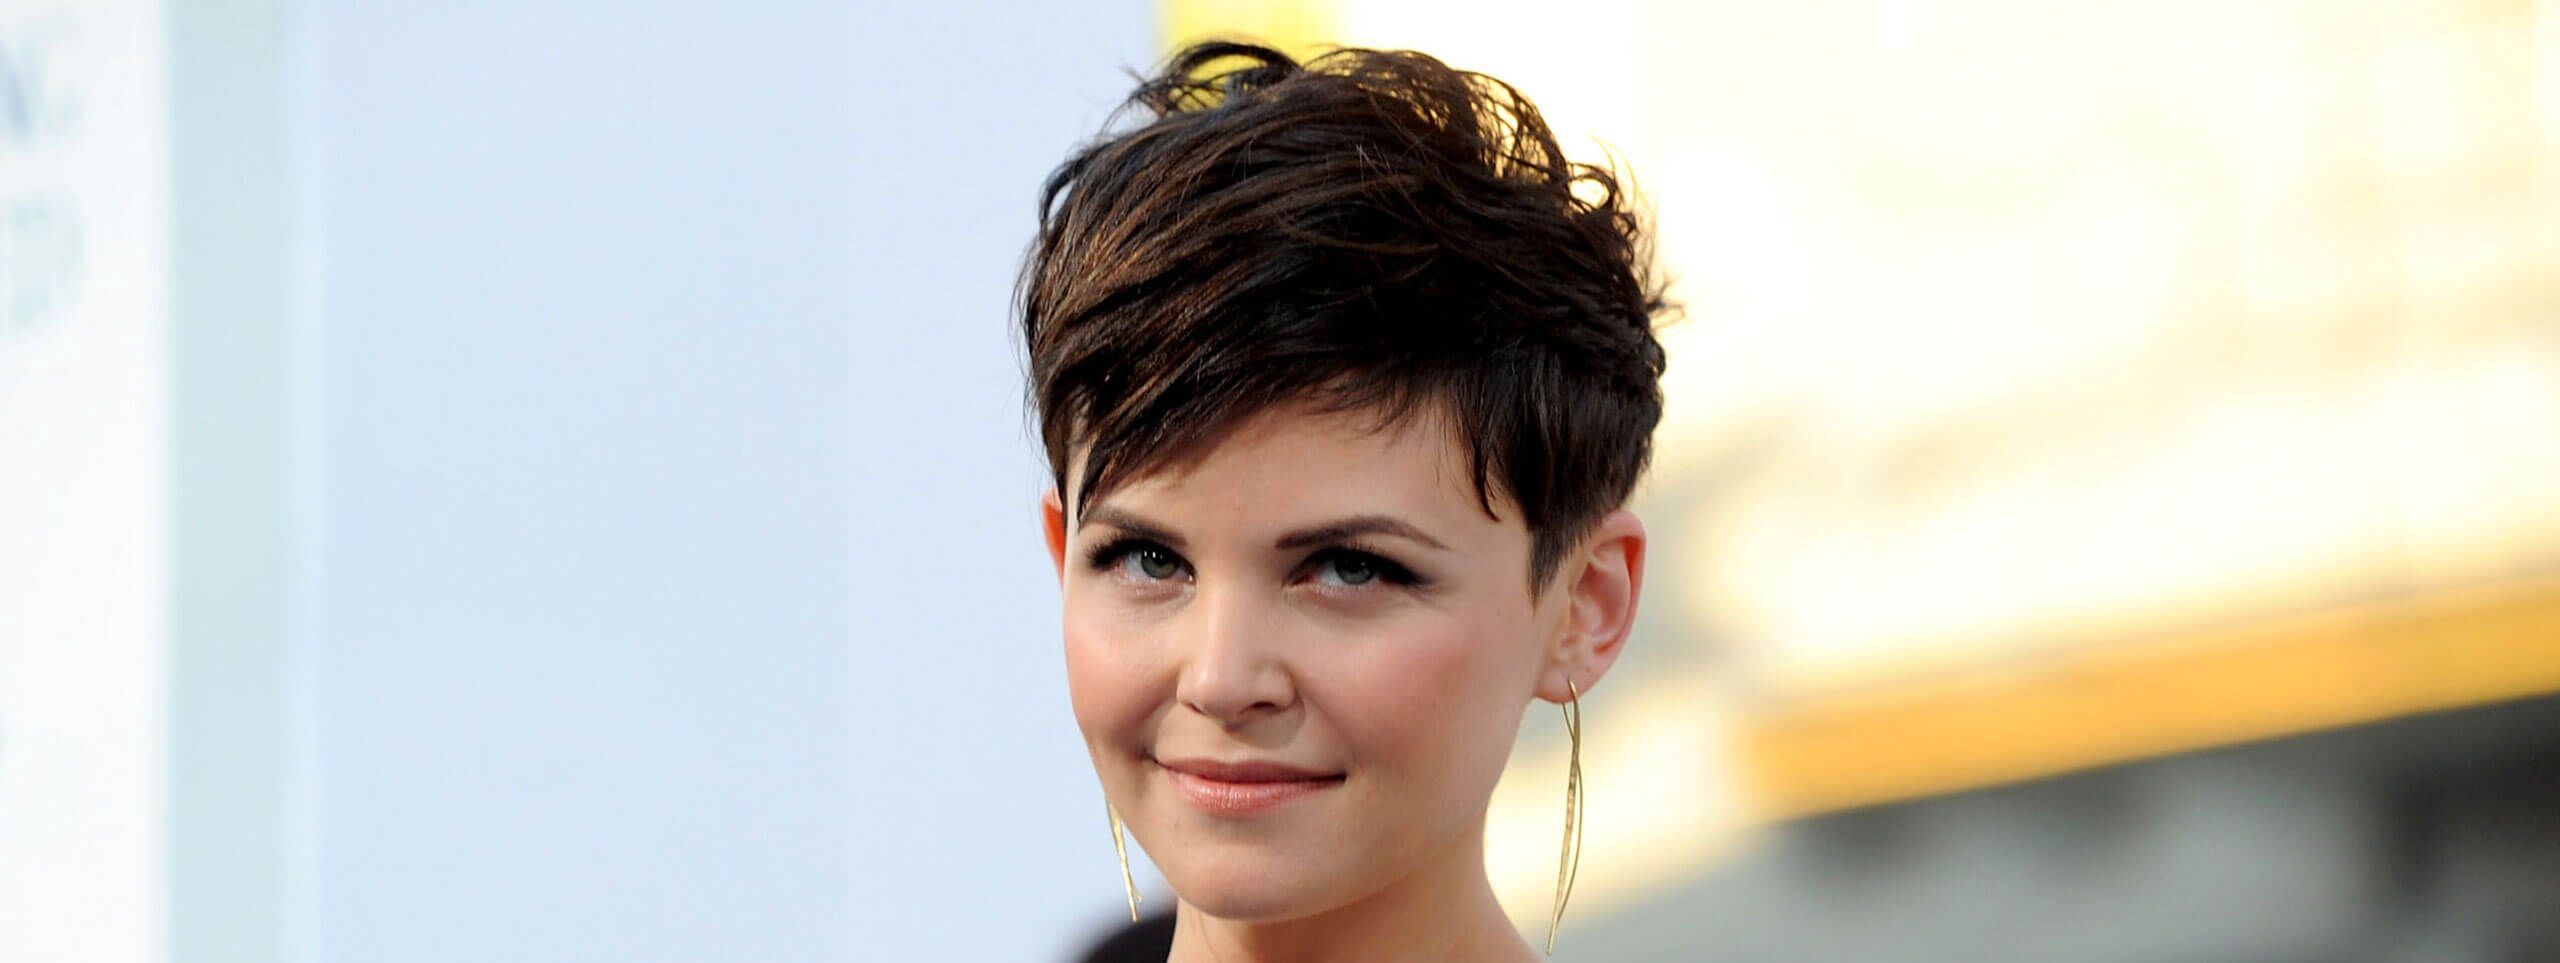 Ginnifer Goodwin acconciatura taglio pixie corto